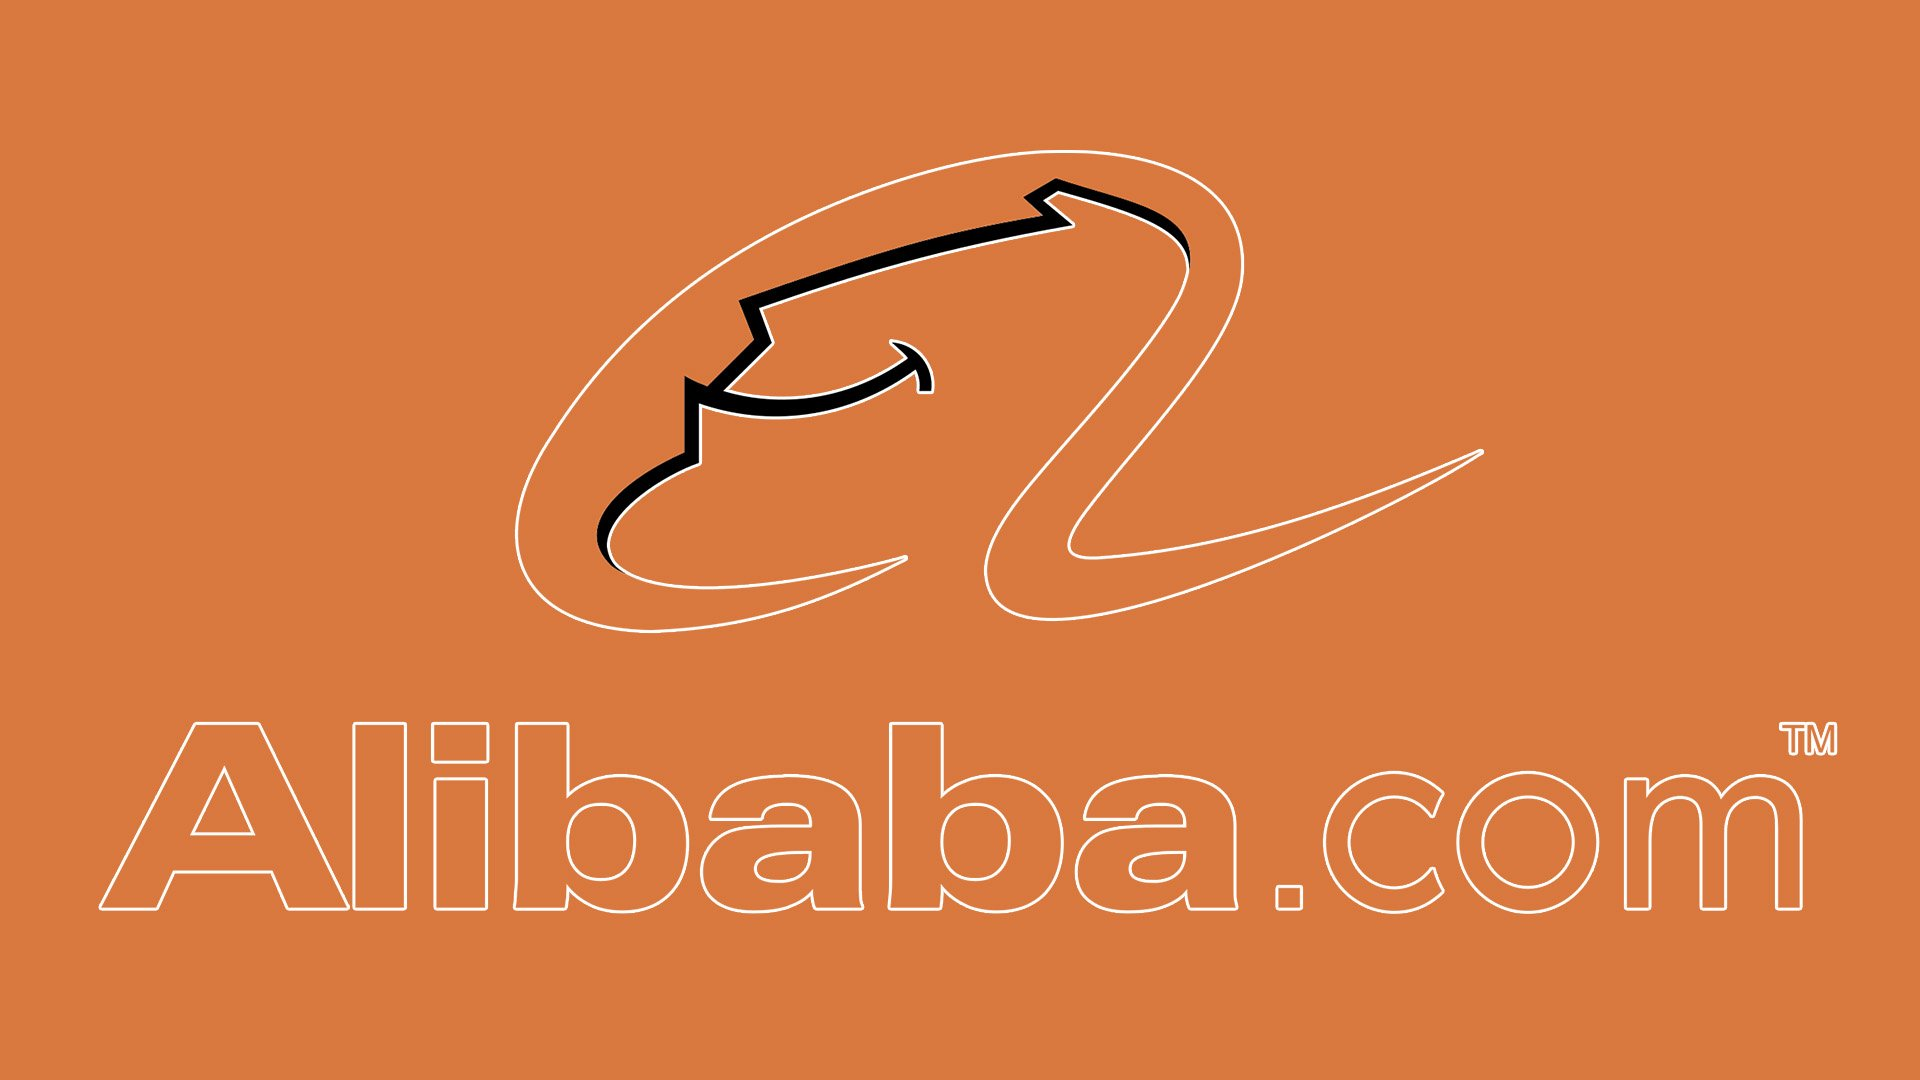 Alibaba Logo And Symbol Meaning History Png Seeking for free alibaba logo png images? alibaba logo and symbol meaning